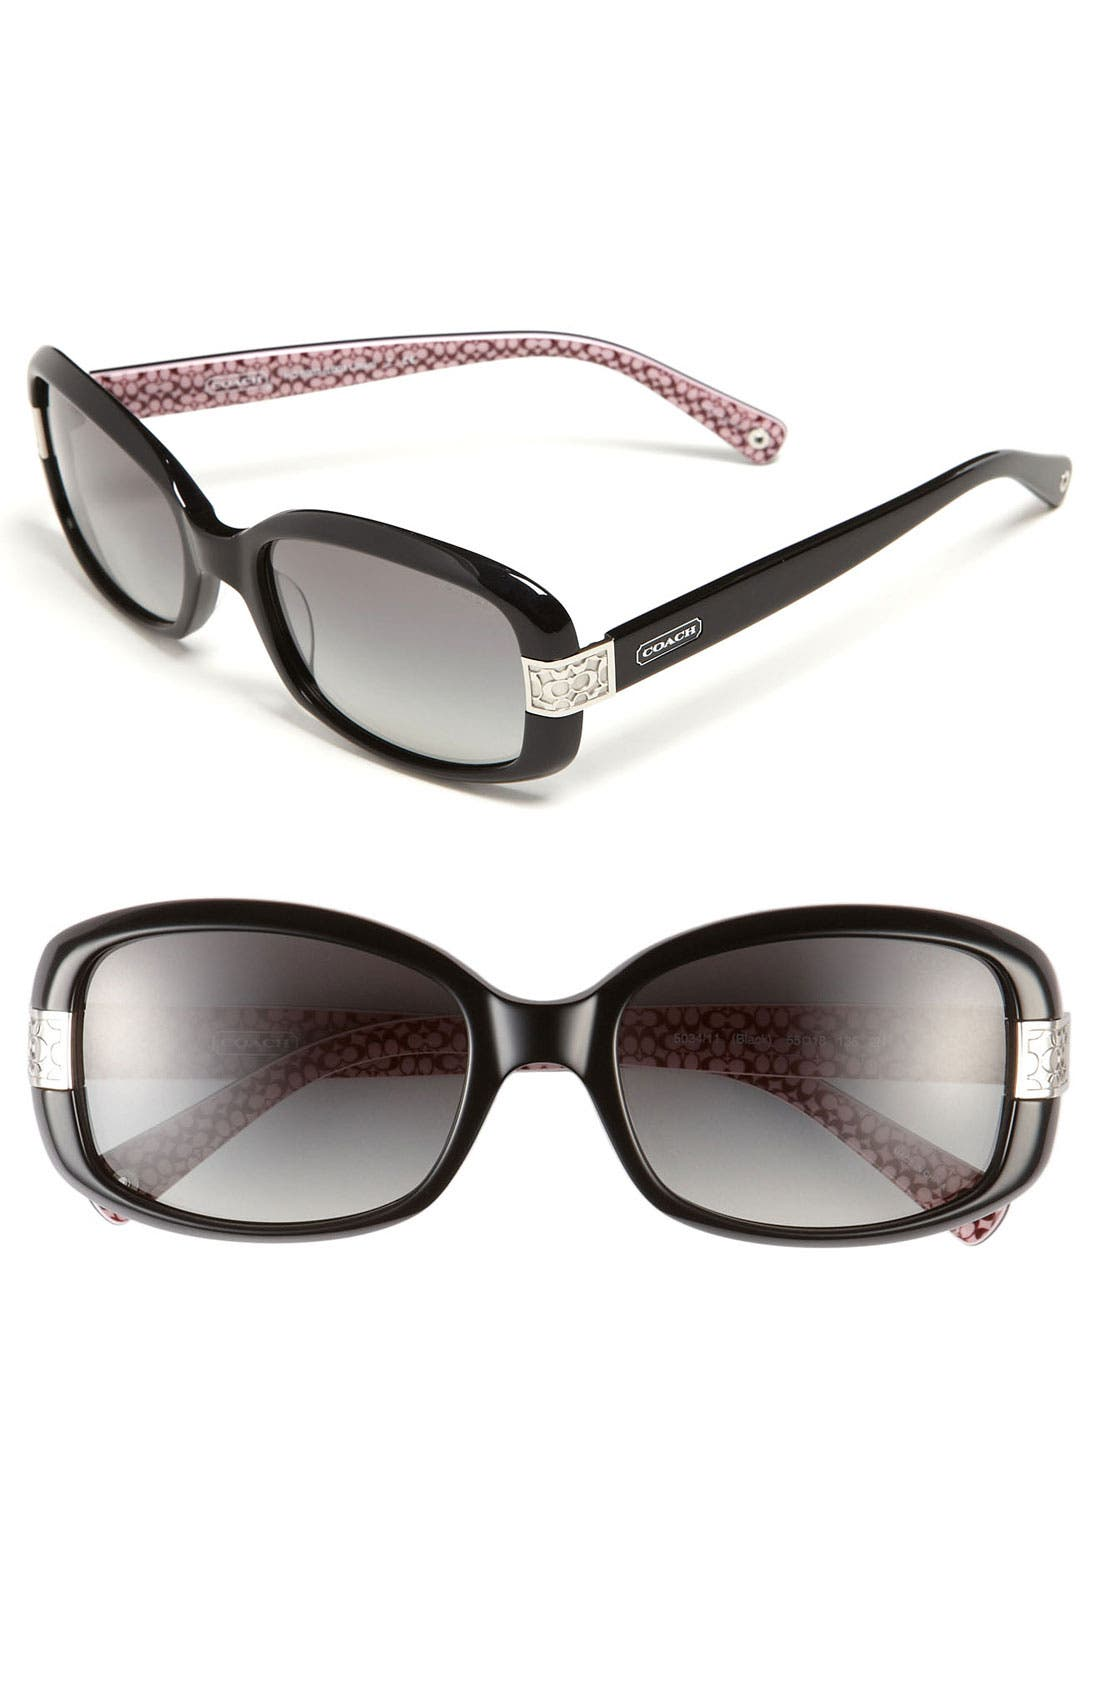 Main Image - COACH 'Lillian' Gradient Lens Sunglasses